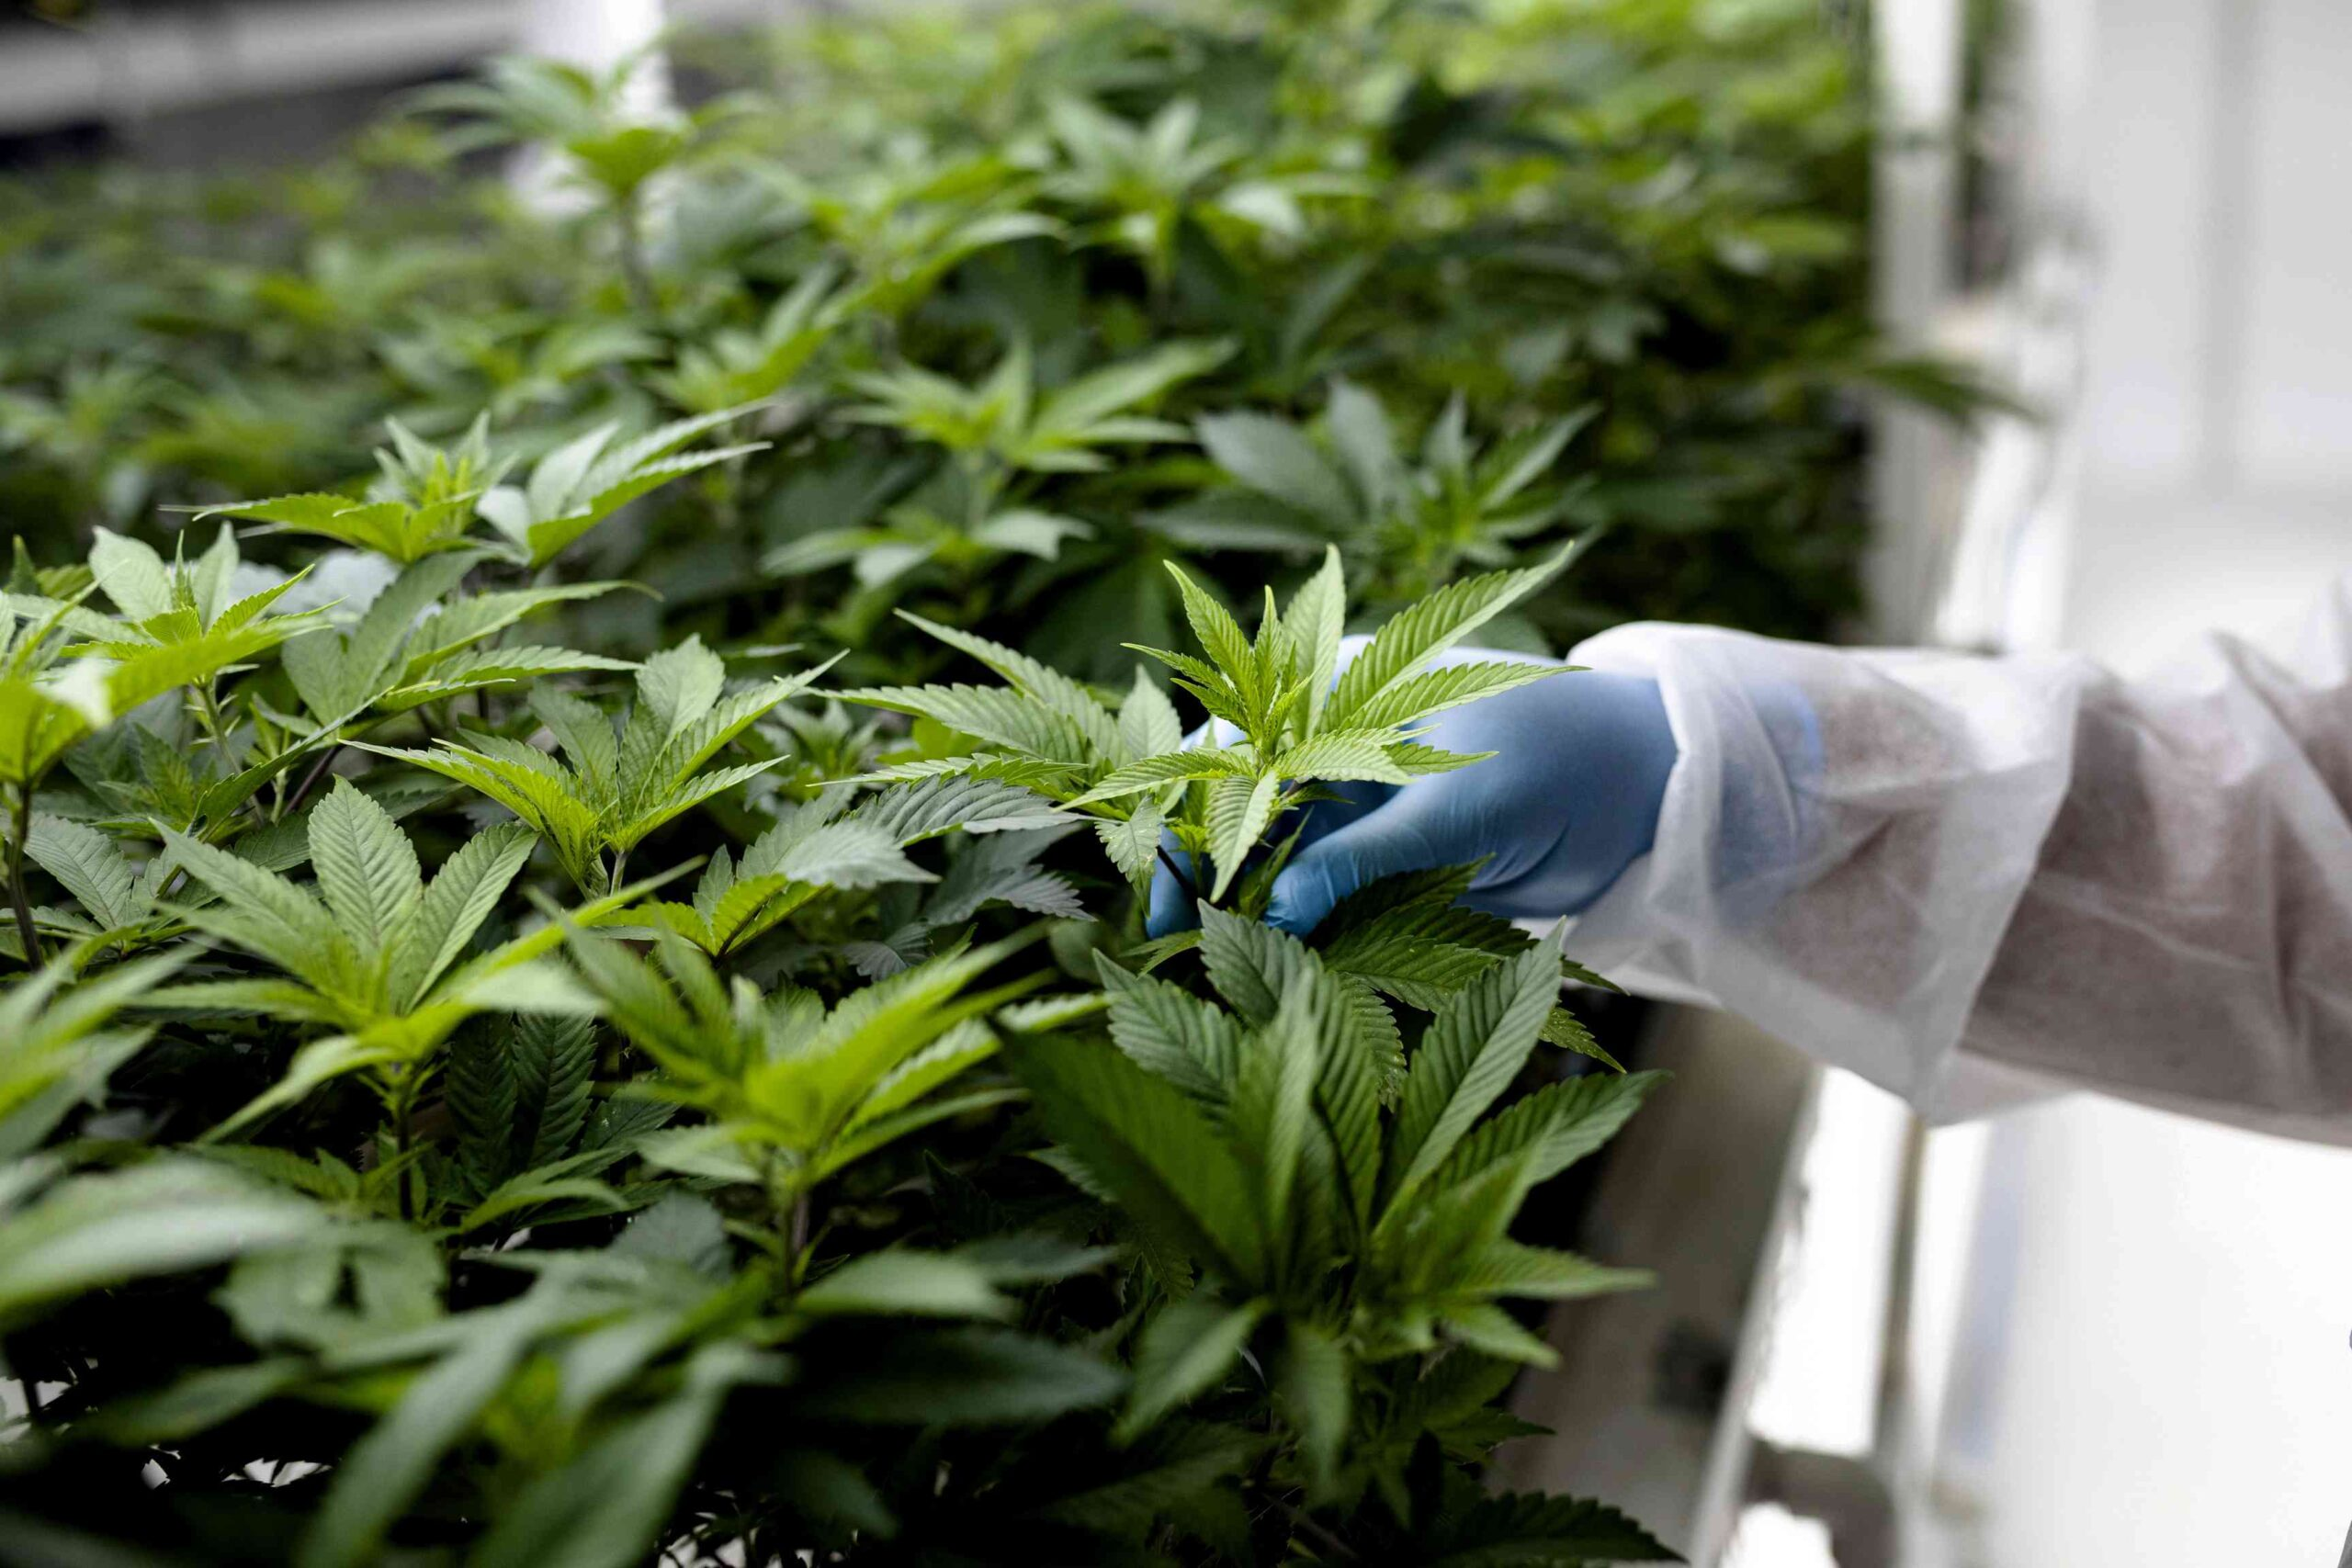 What Are the Leading Growth Factors for the Cannabis Industry